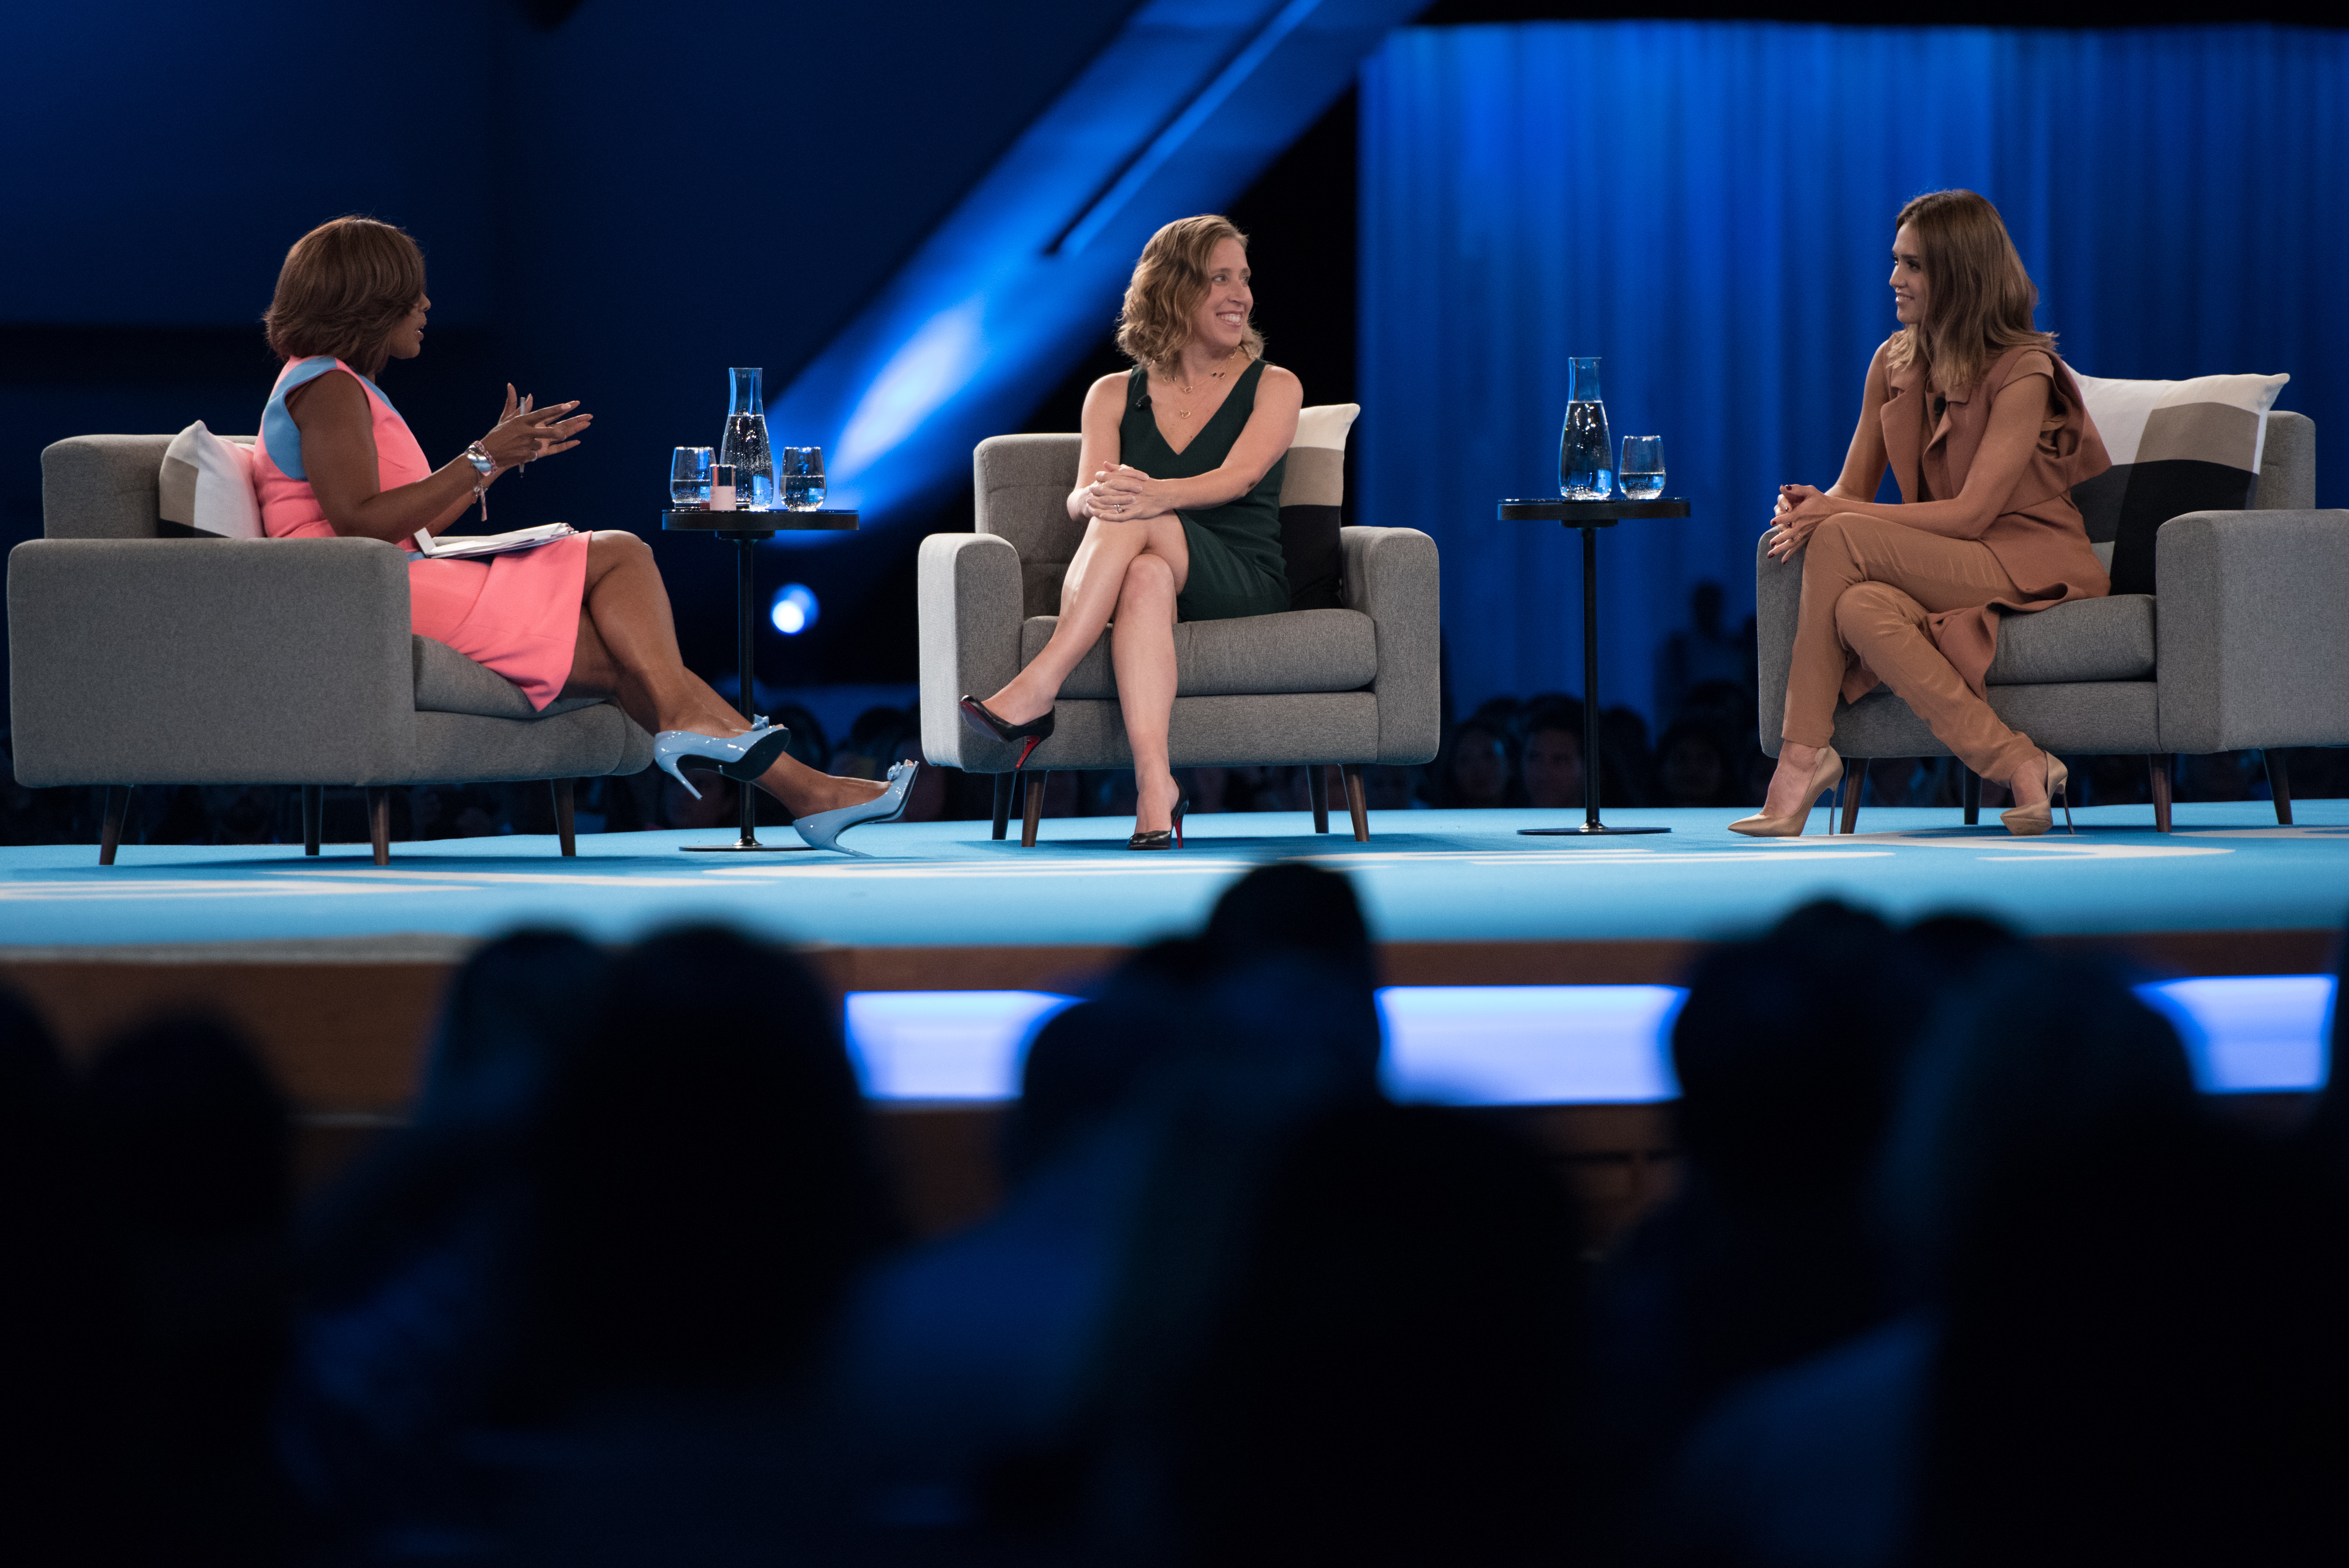 5 Big Takeaways from the Dreamforce Women's Leadership Summit